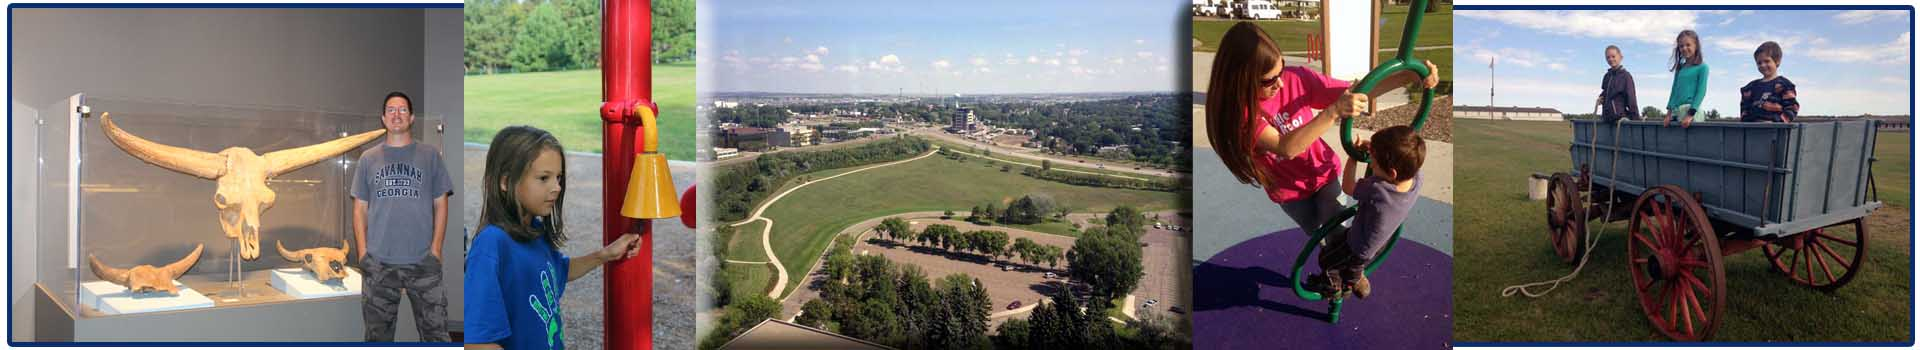 10 Reasons to Visit Bismarck With Your Family